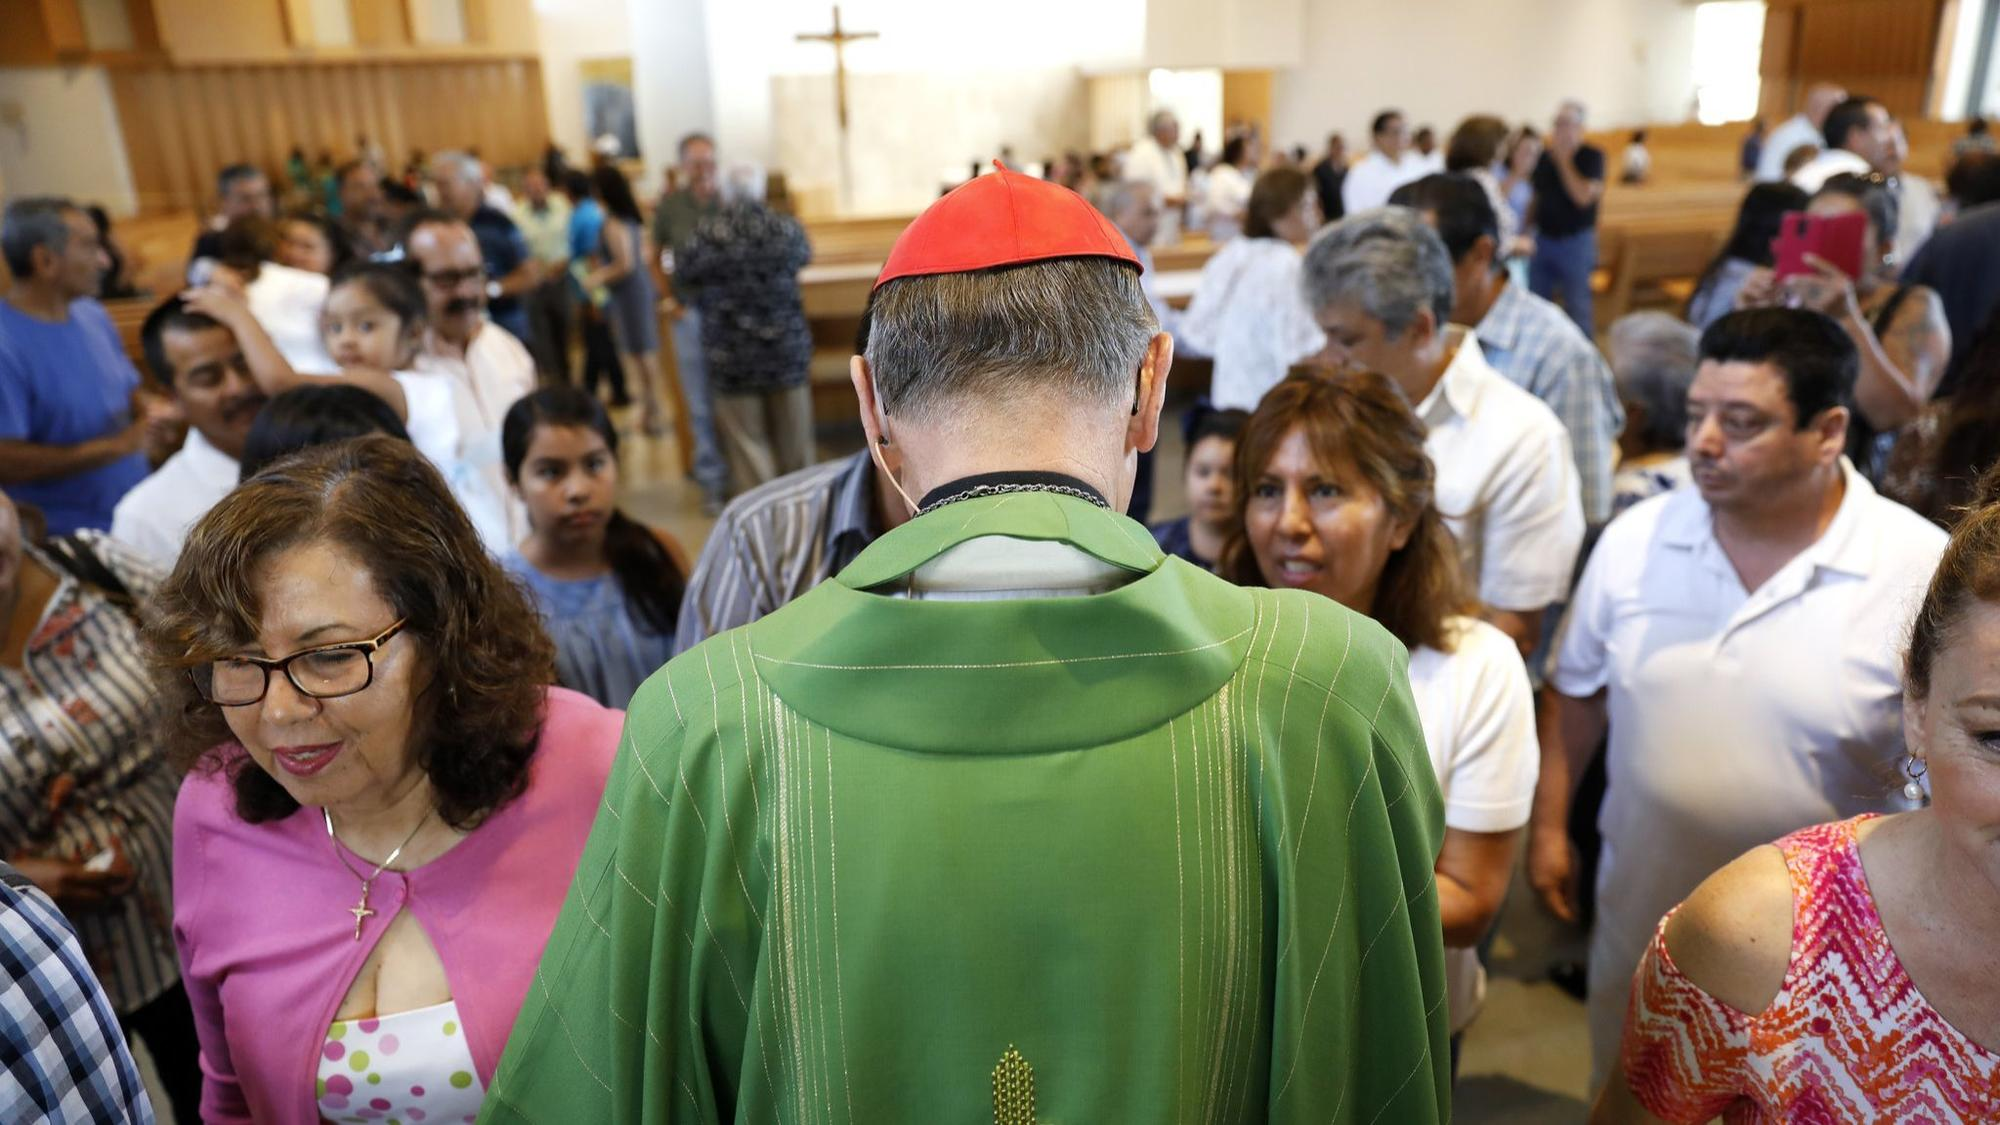 HACIENDA HEIGHTS-CA-JULY 8, 2018: Cardinal Mahony greets parishioners after leading mass in Spanish